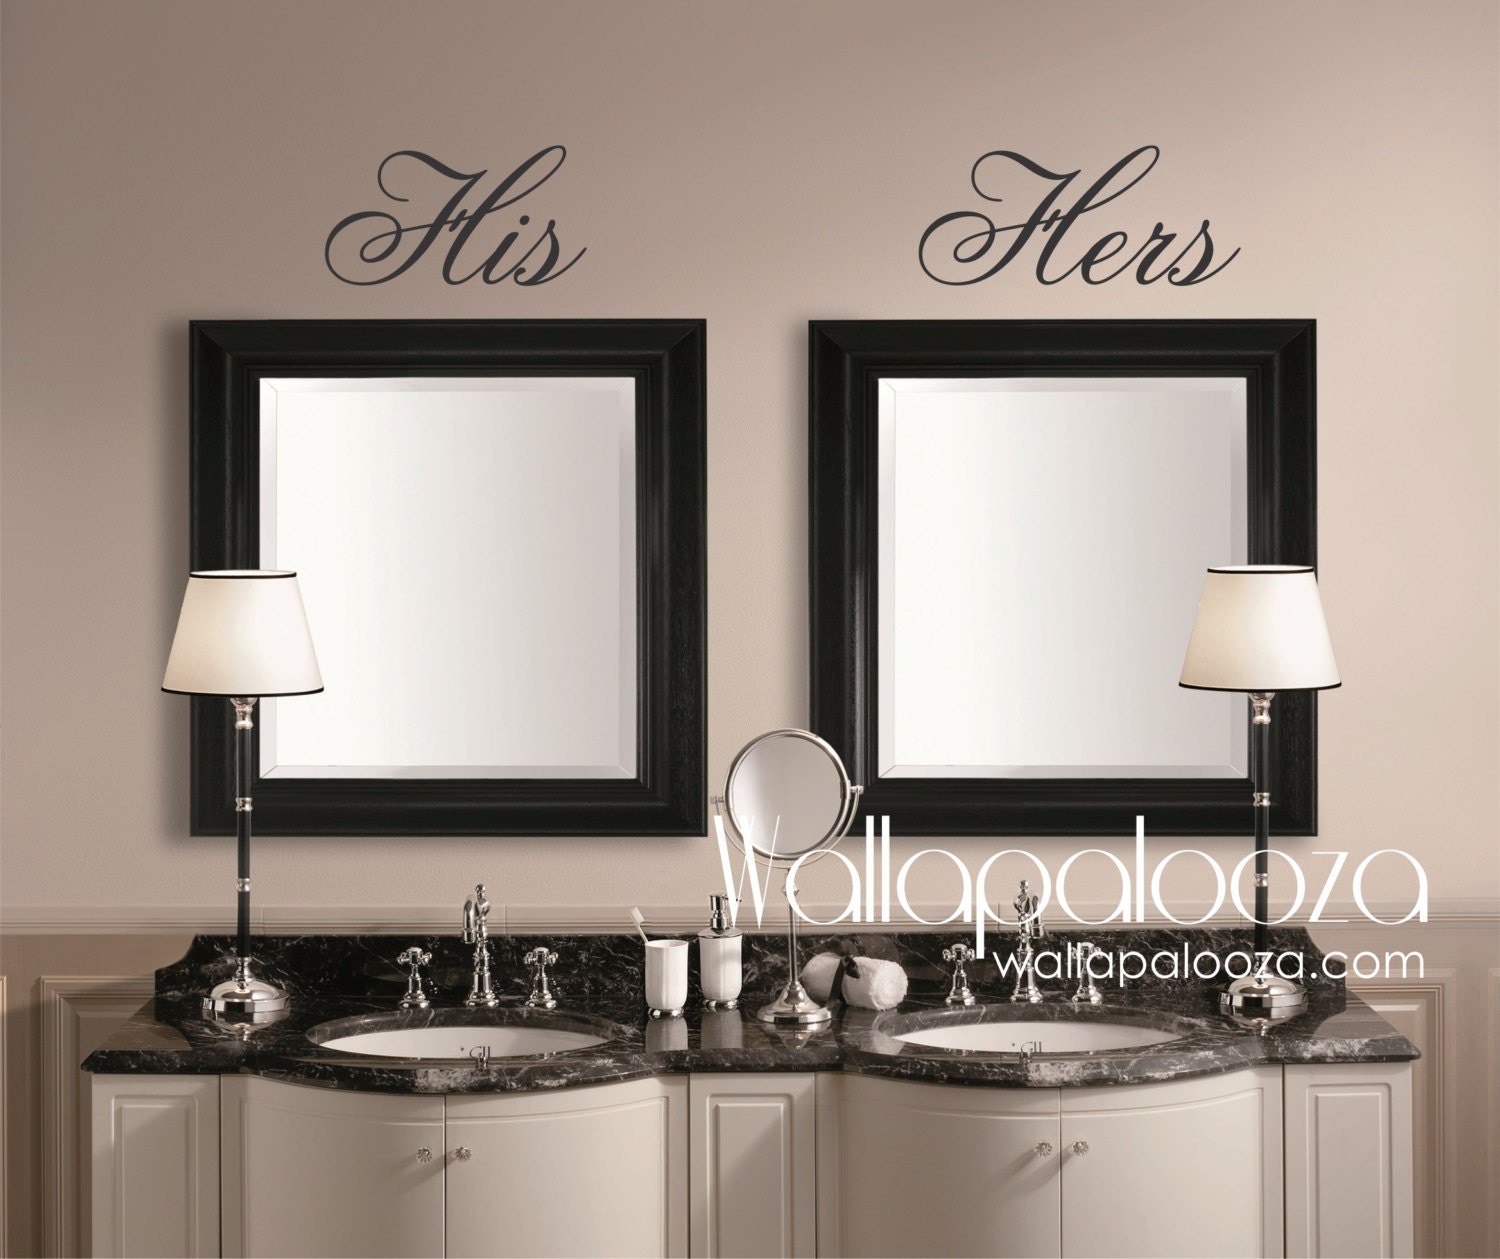 zoom - His And Hers Bedroom Decor